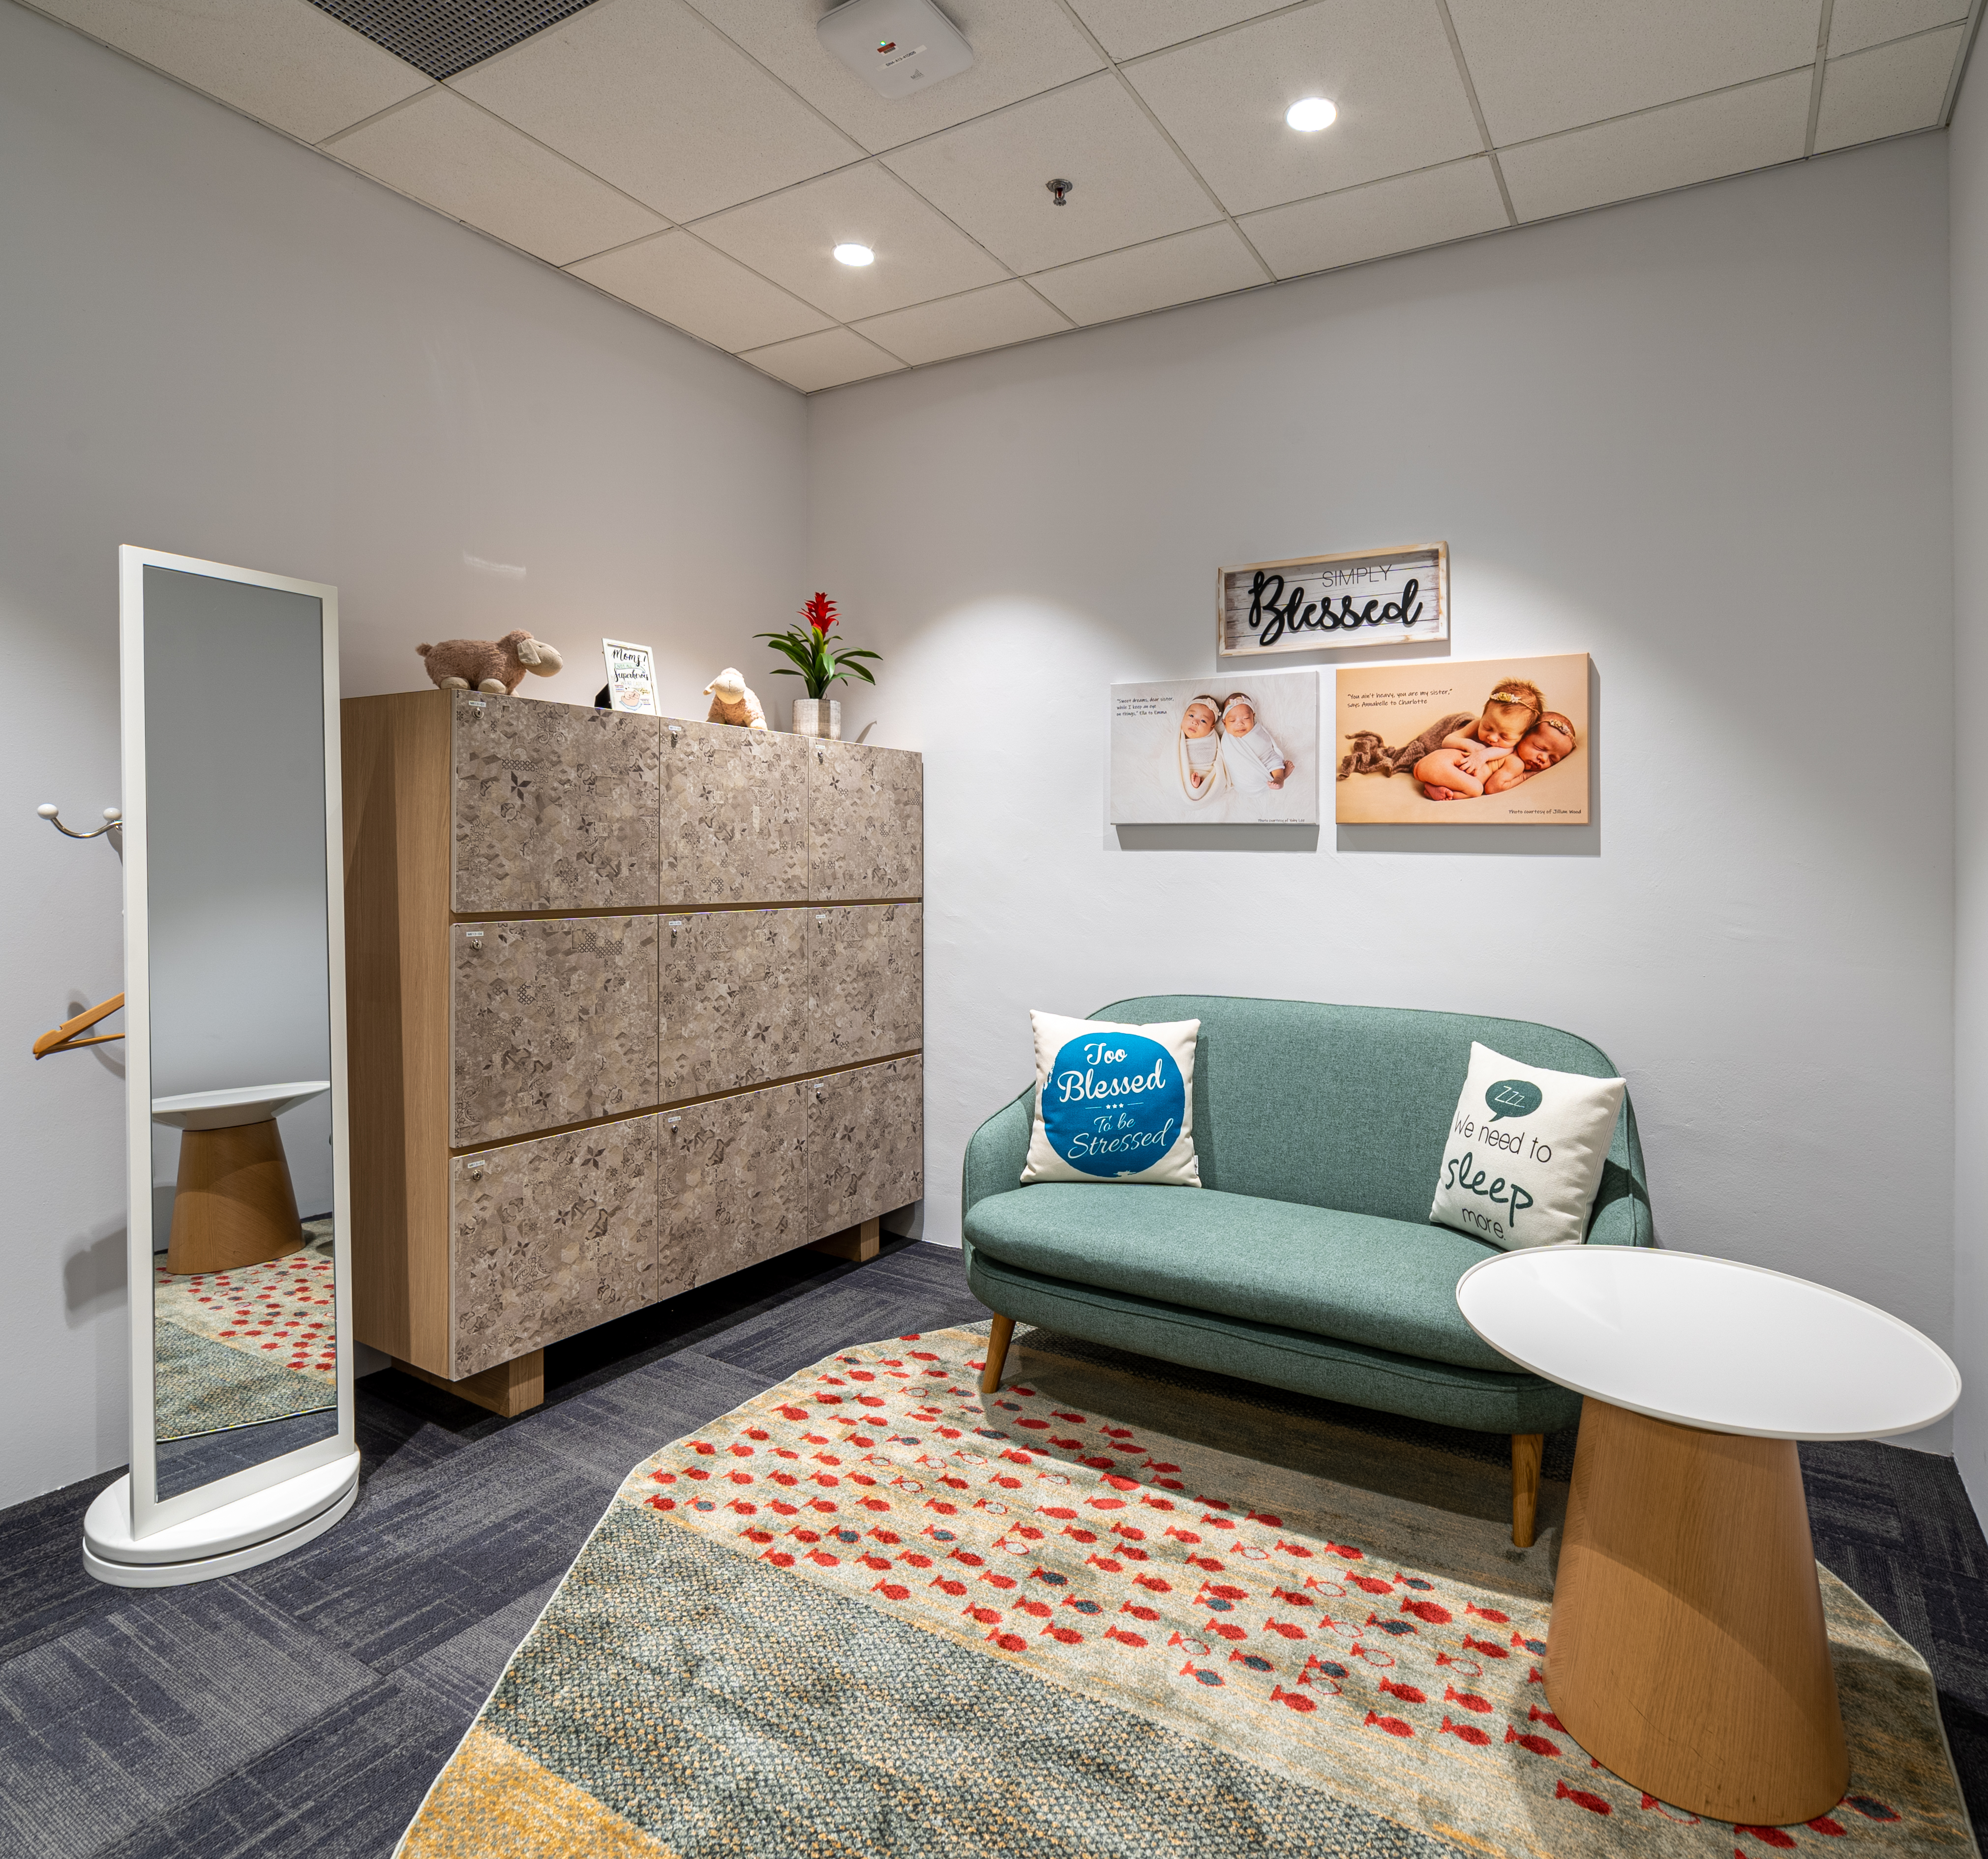 Space Matrix's recent workspace for a multinational company features comfortable, cosy mother's rooms to make the return to work easier